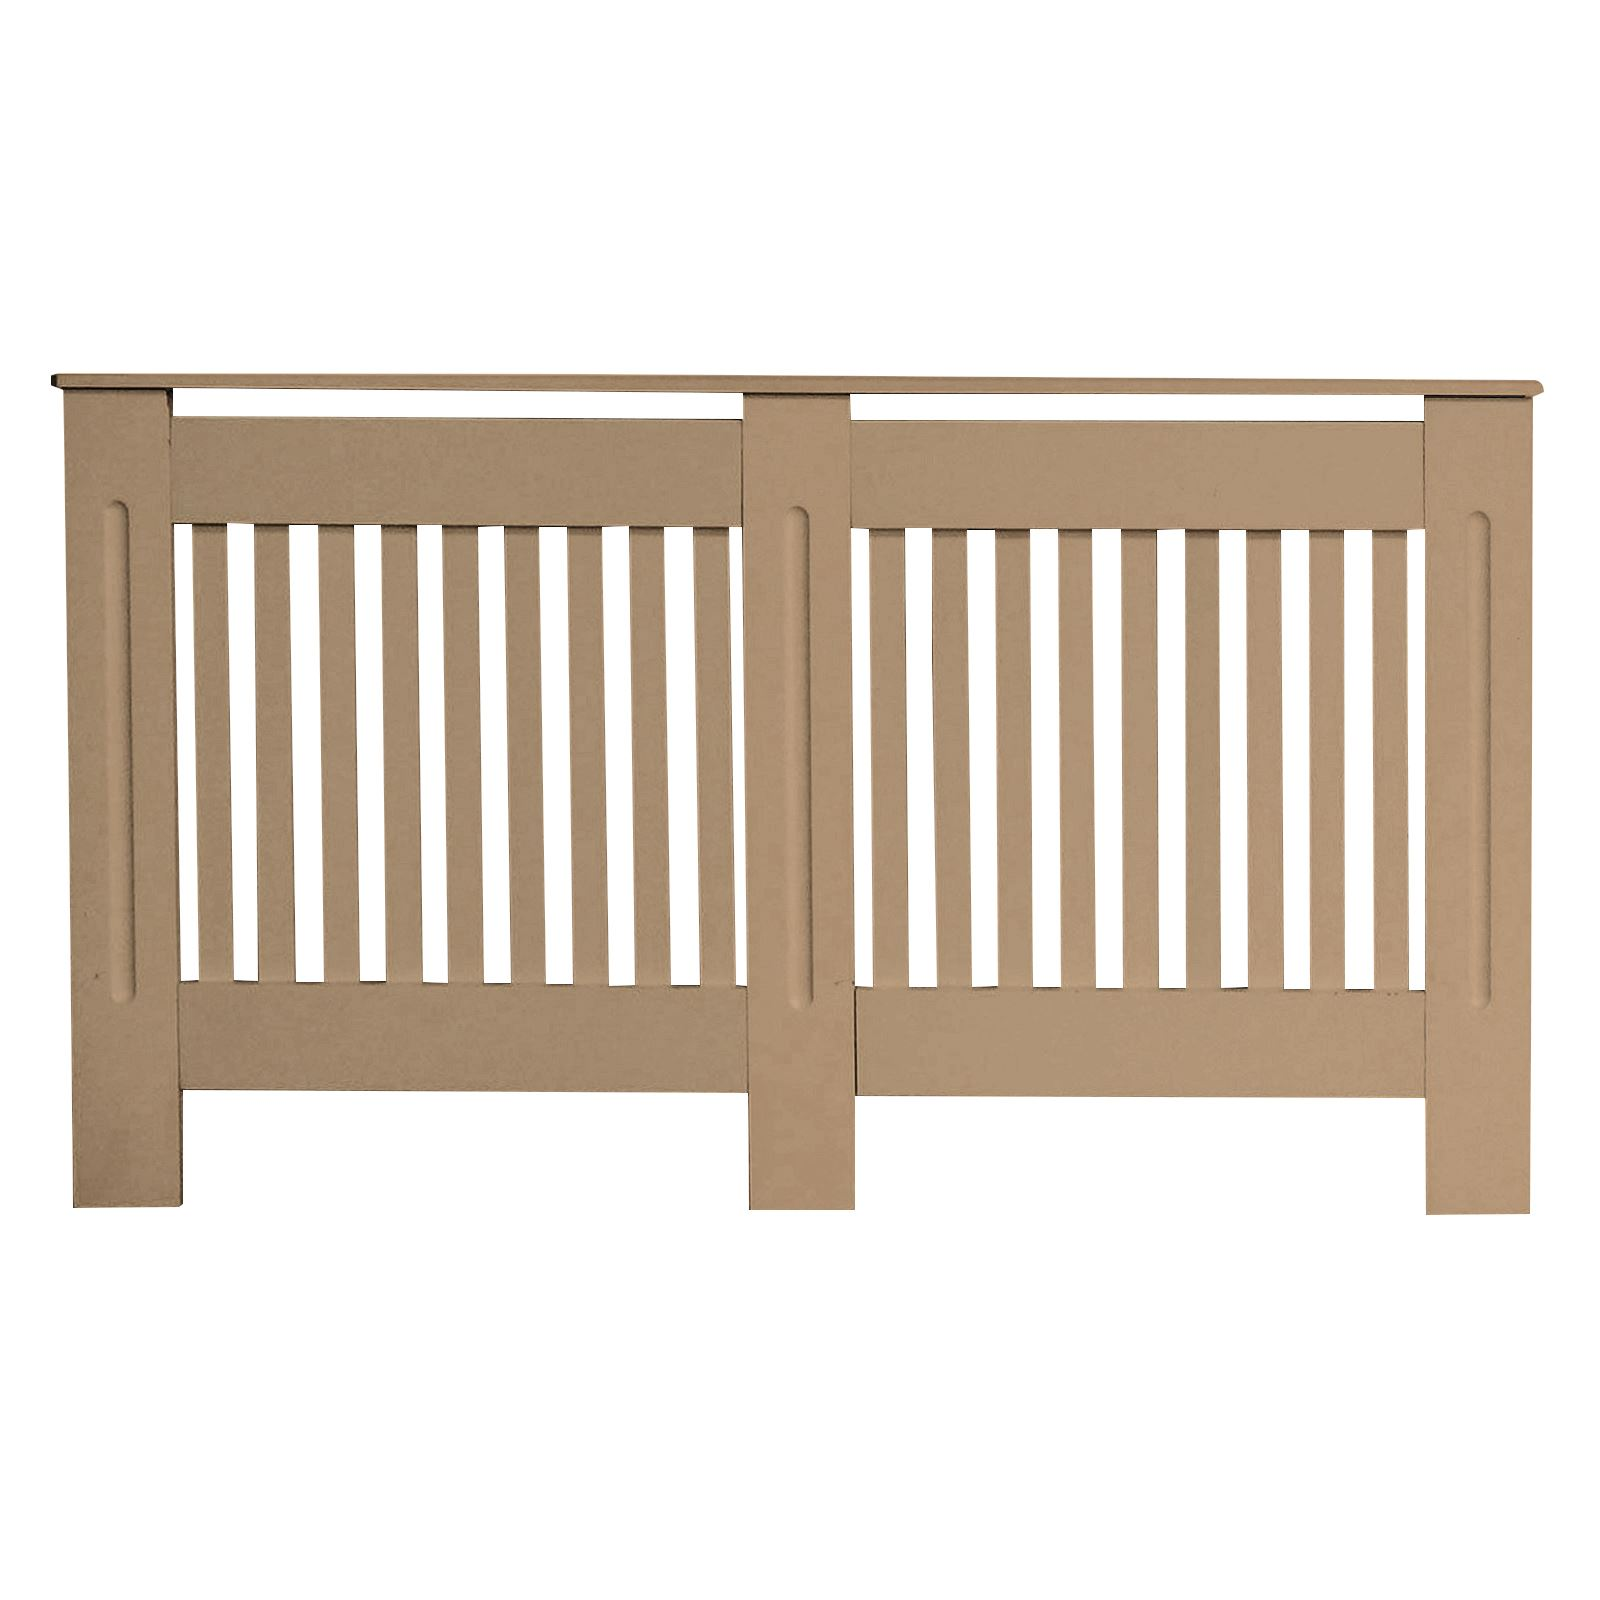 Traditional-Radiator-Cover-Cabinet-Vertical-Slatted-MDF-Wood-Small-Large-Unit thumbnail 12